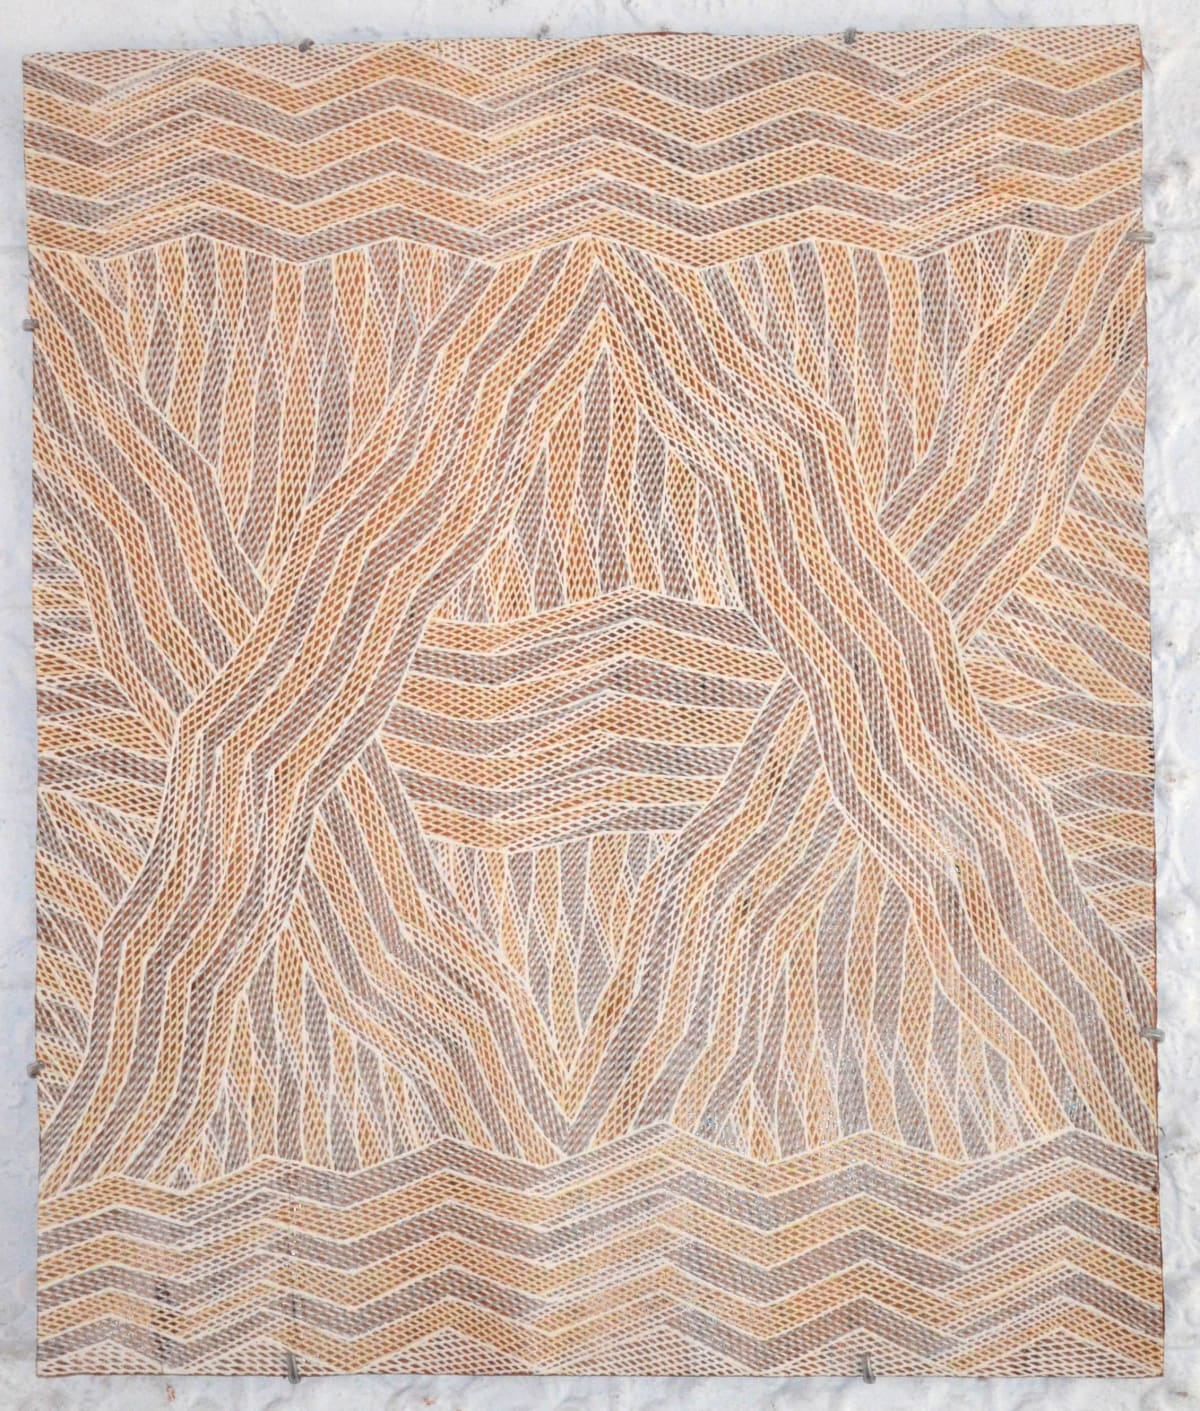 Manini Gumana Garrapara natural earth pigment on bark 74 x 63 cm